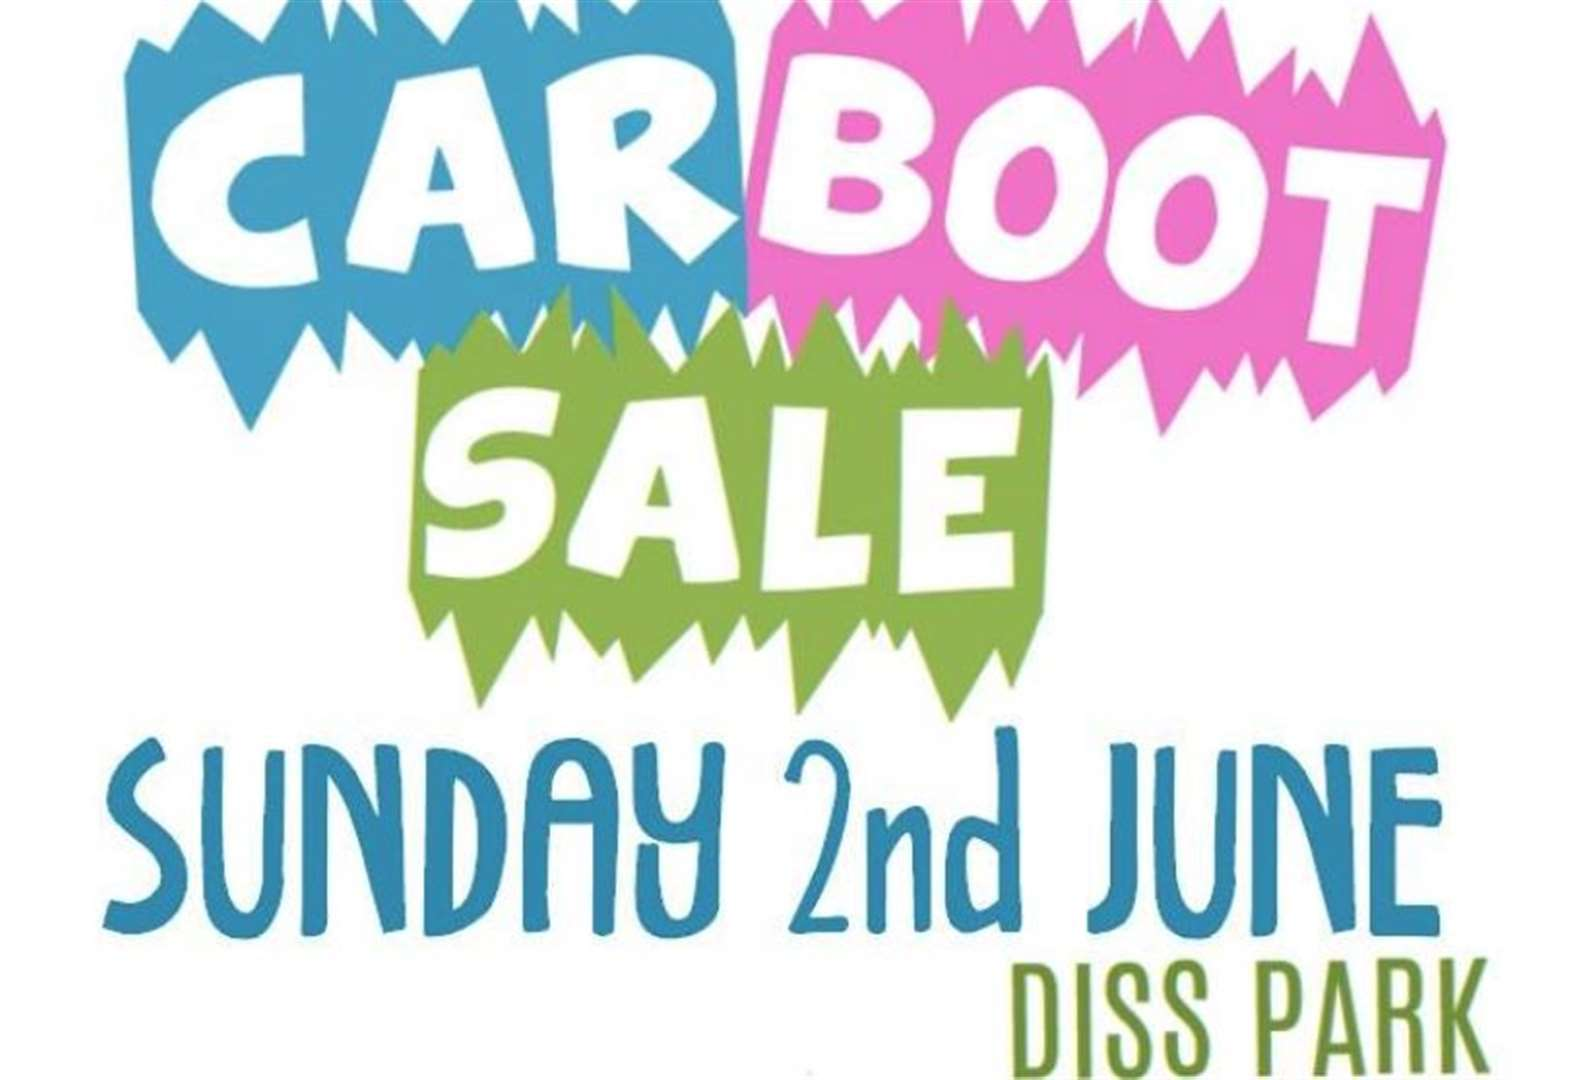 Anger as Diss carnival car boot sale posters ripped down